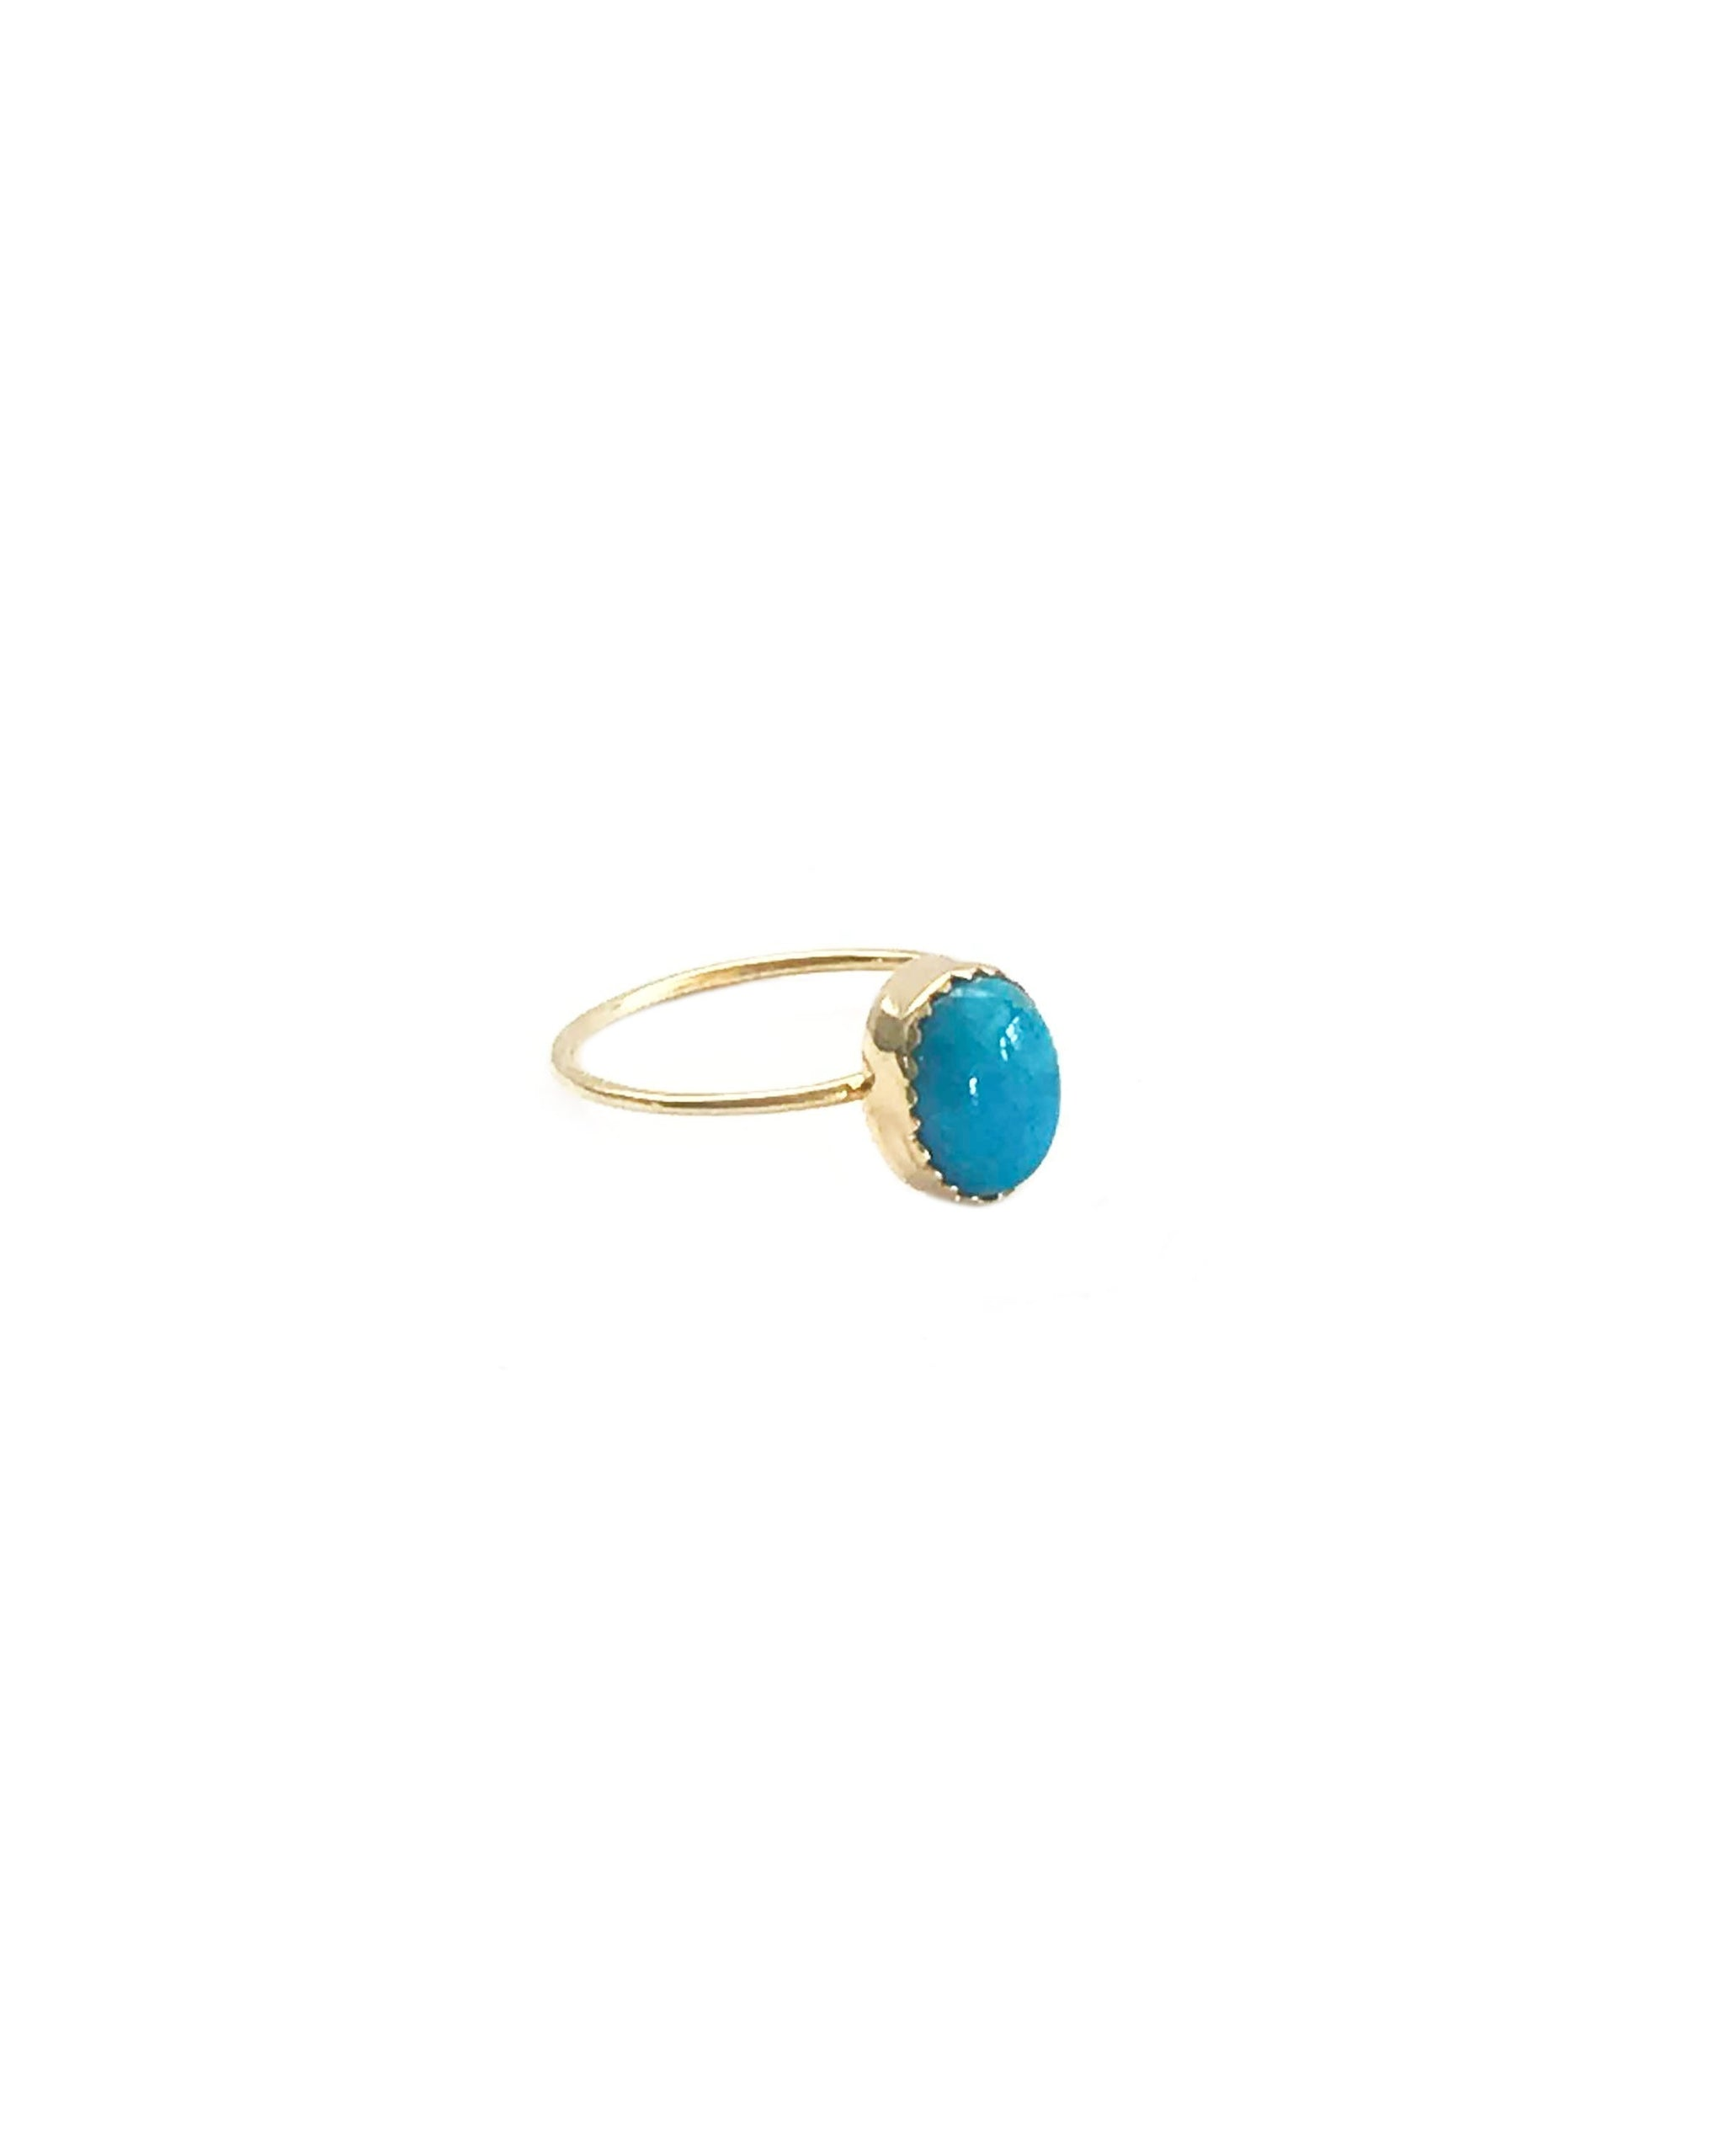 MOON DUST RING - GOLD - TURQUOISE + TOBACCO